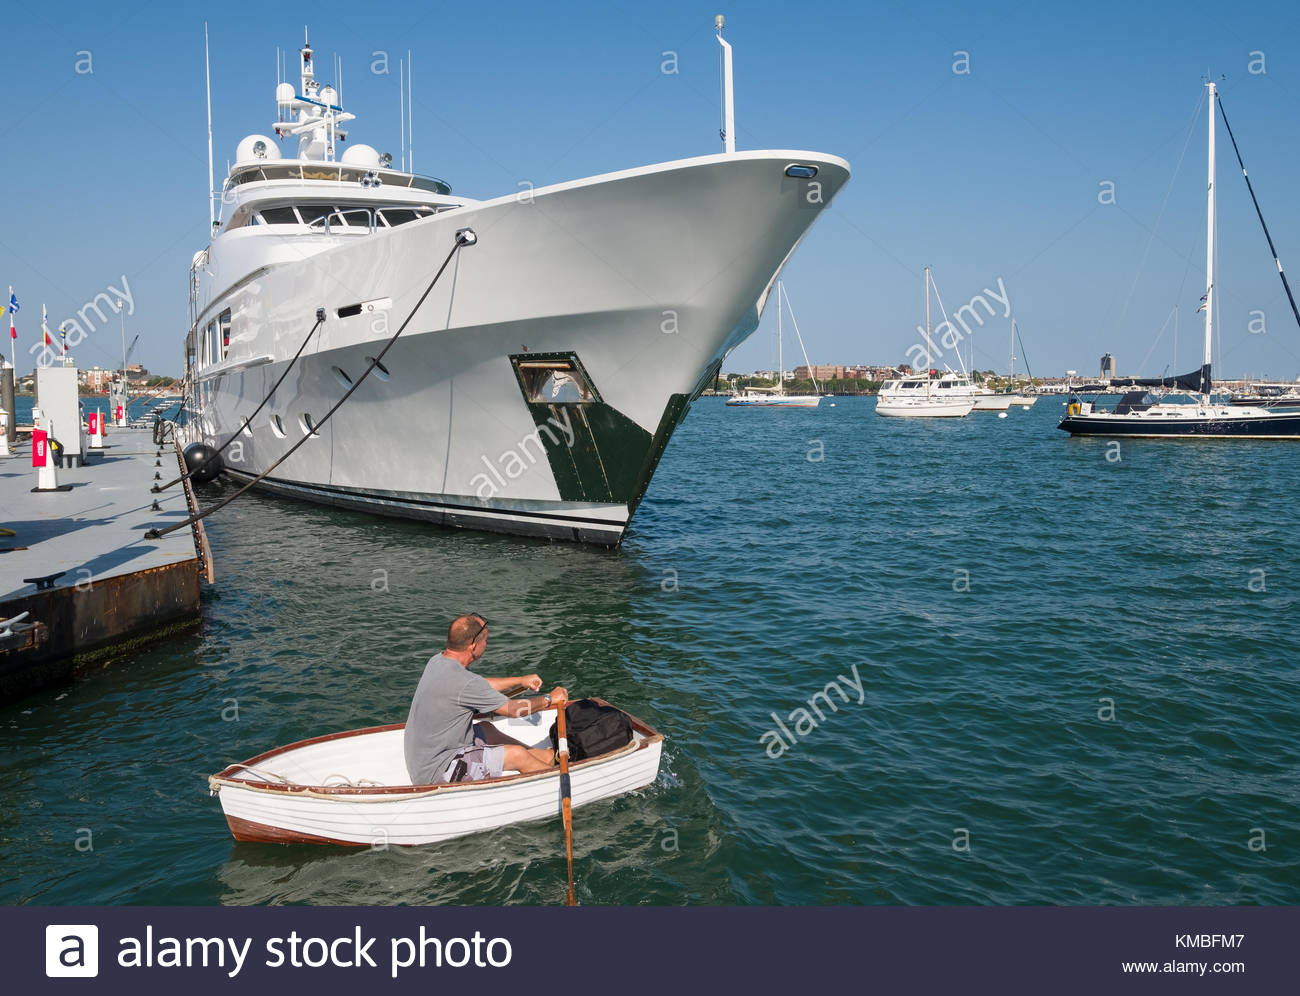 Man rowing small dinghy past mega luxury yacht moored to floating pier in the Boston Waterboat Marina, North Atlantic - Stock Image